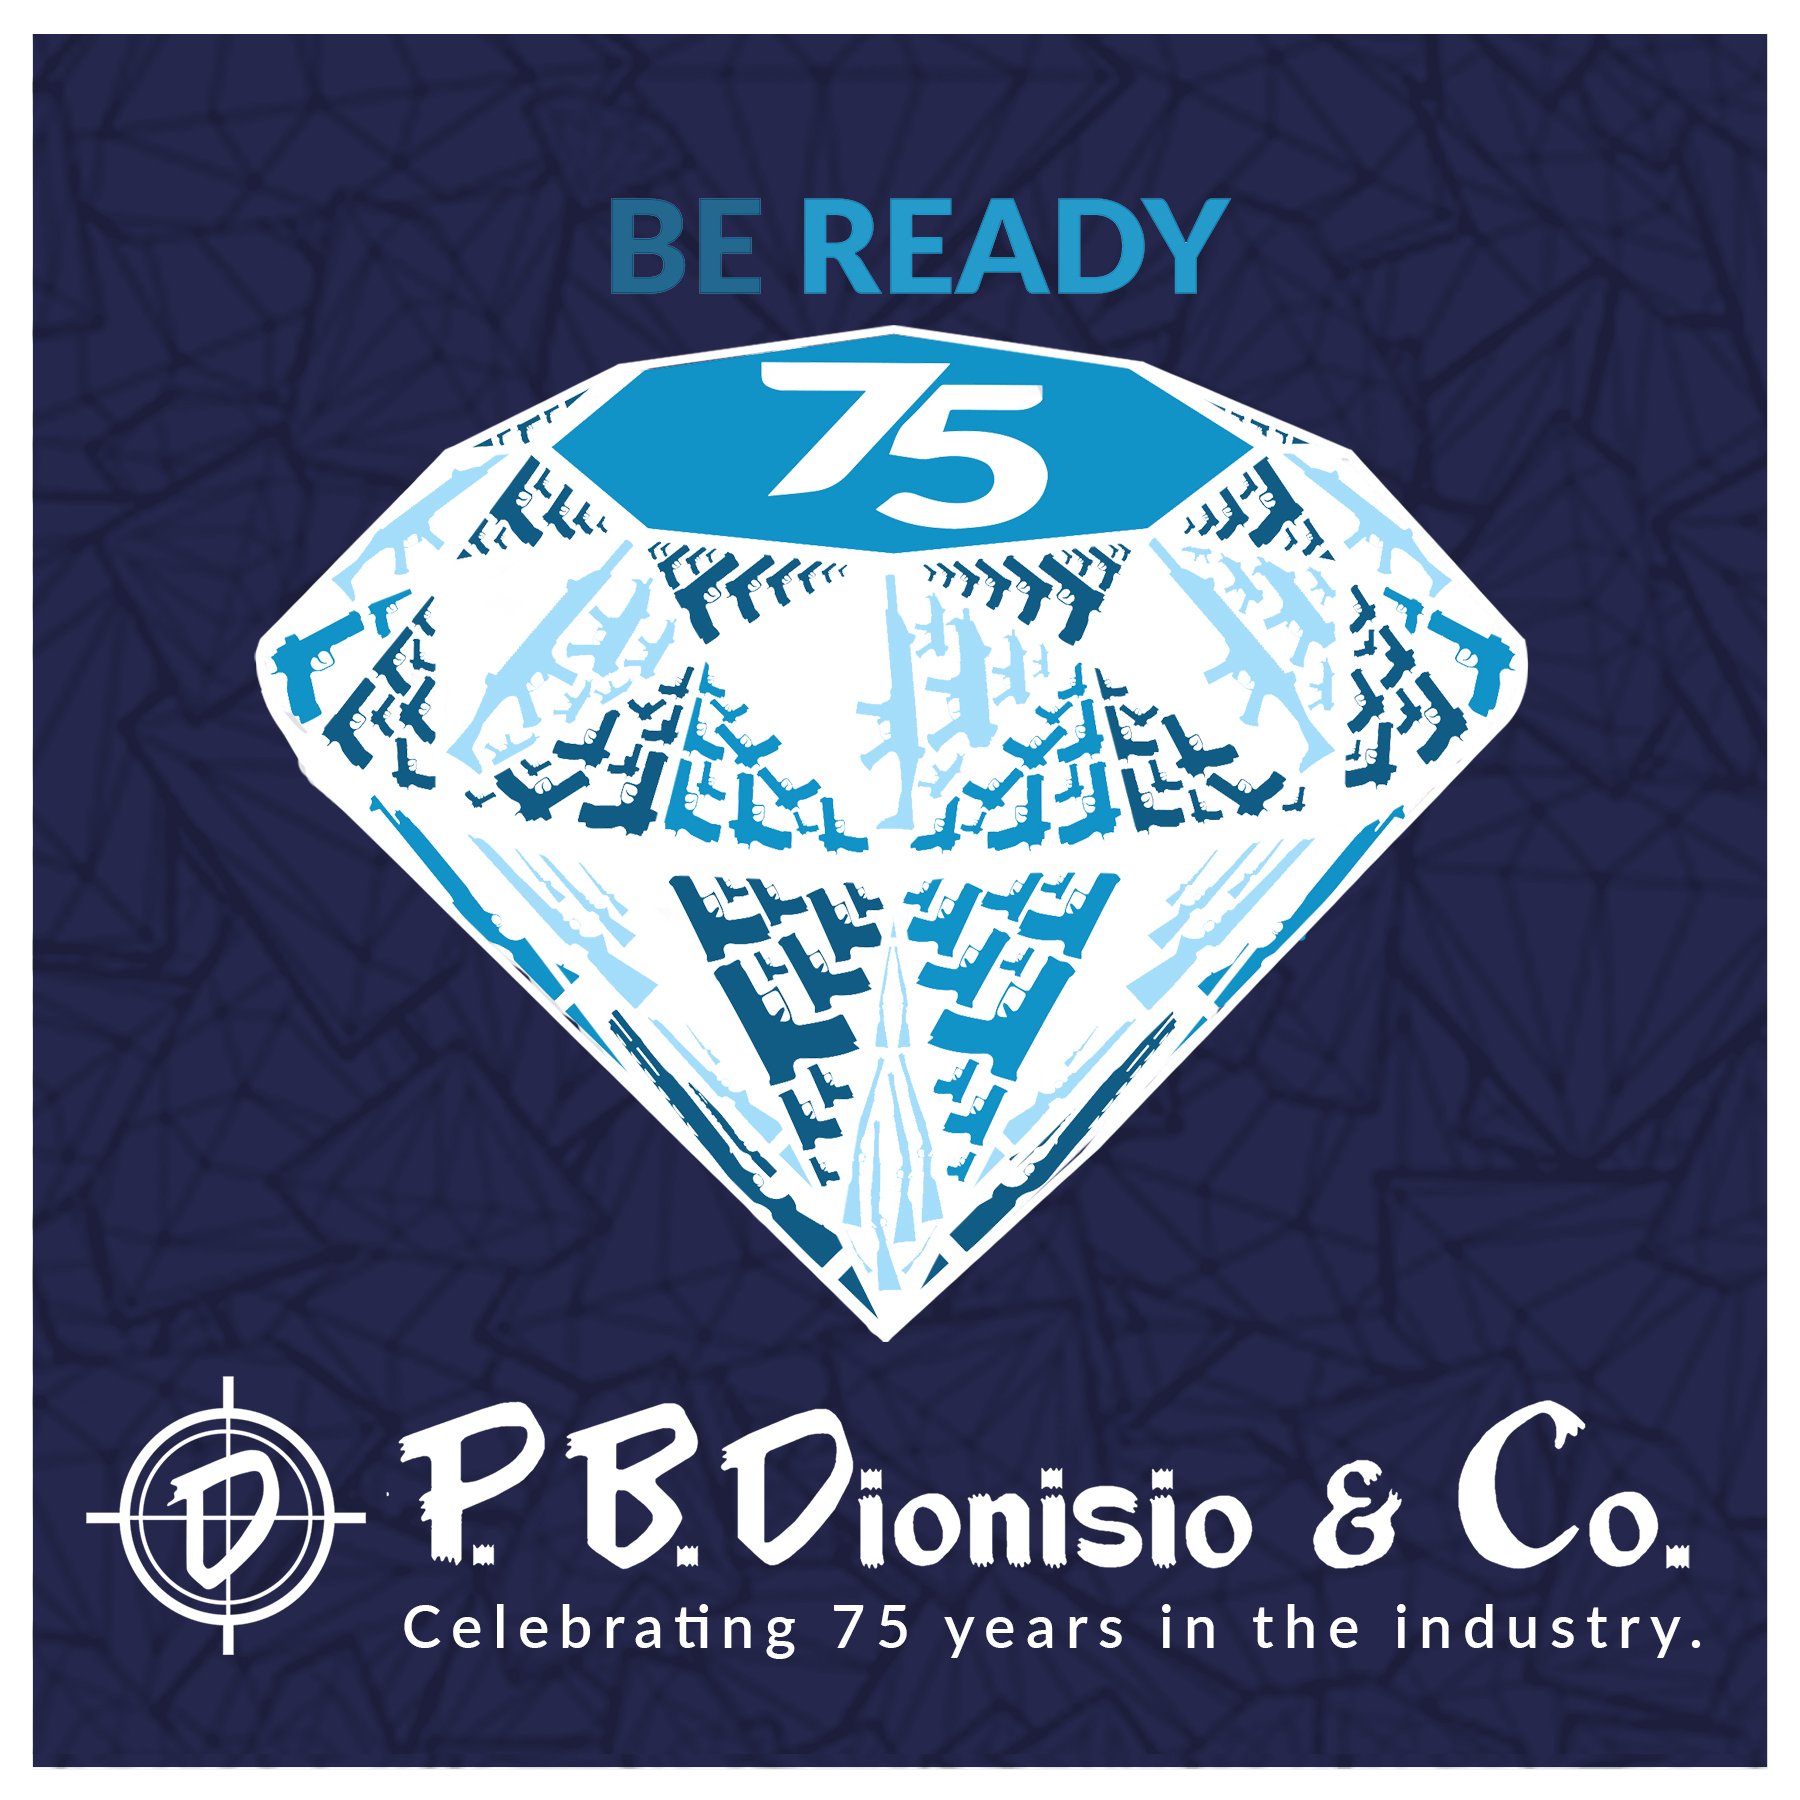 Be ready for P.B.Dionisio & Co. 75th Anniversary Event!